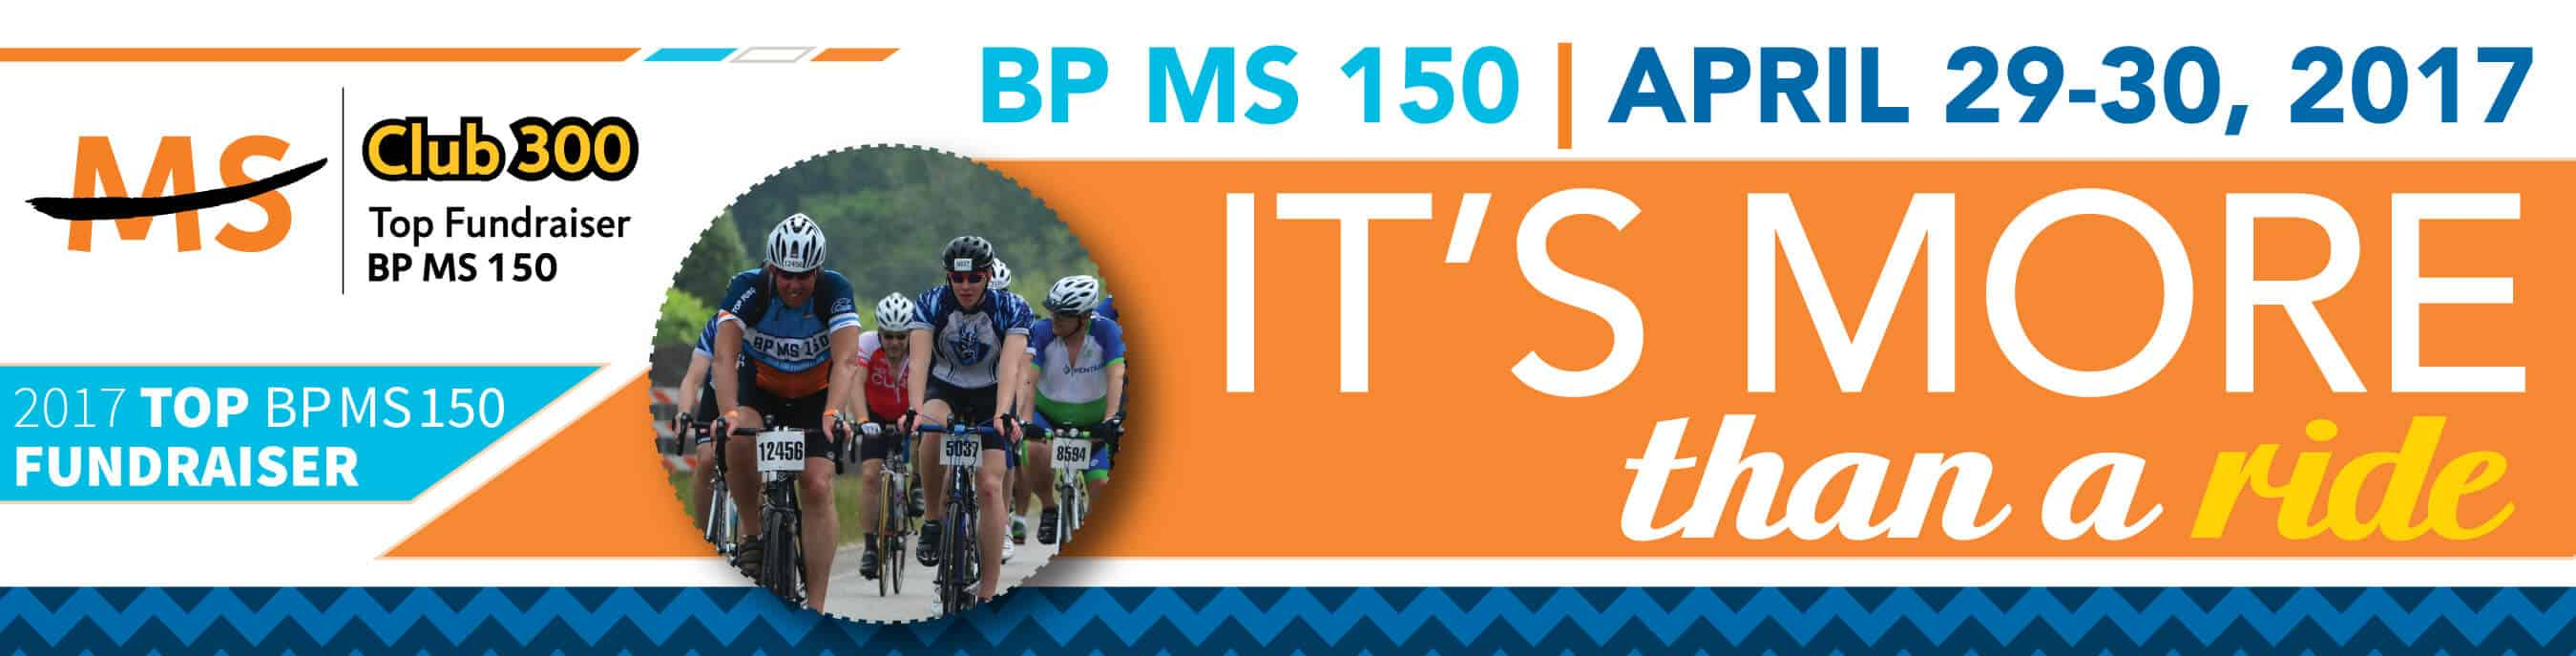 Web Design Company Houston - WizardsWebs Design LLC Houston, TX - Steve Green is proud to be a 2017 Club 300 Top Fundraiser for the BP MS150 Bike Ride supporting National Multiple Sclerosis Society